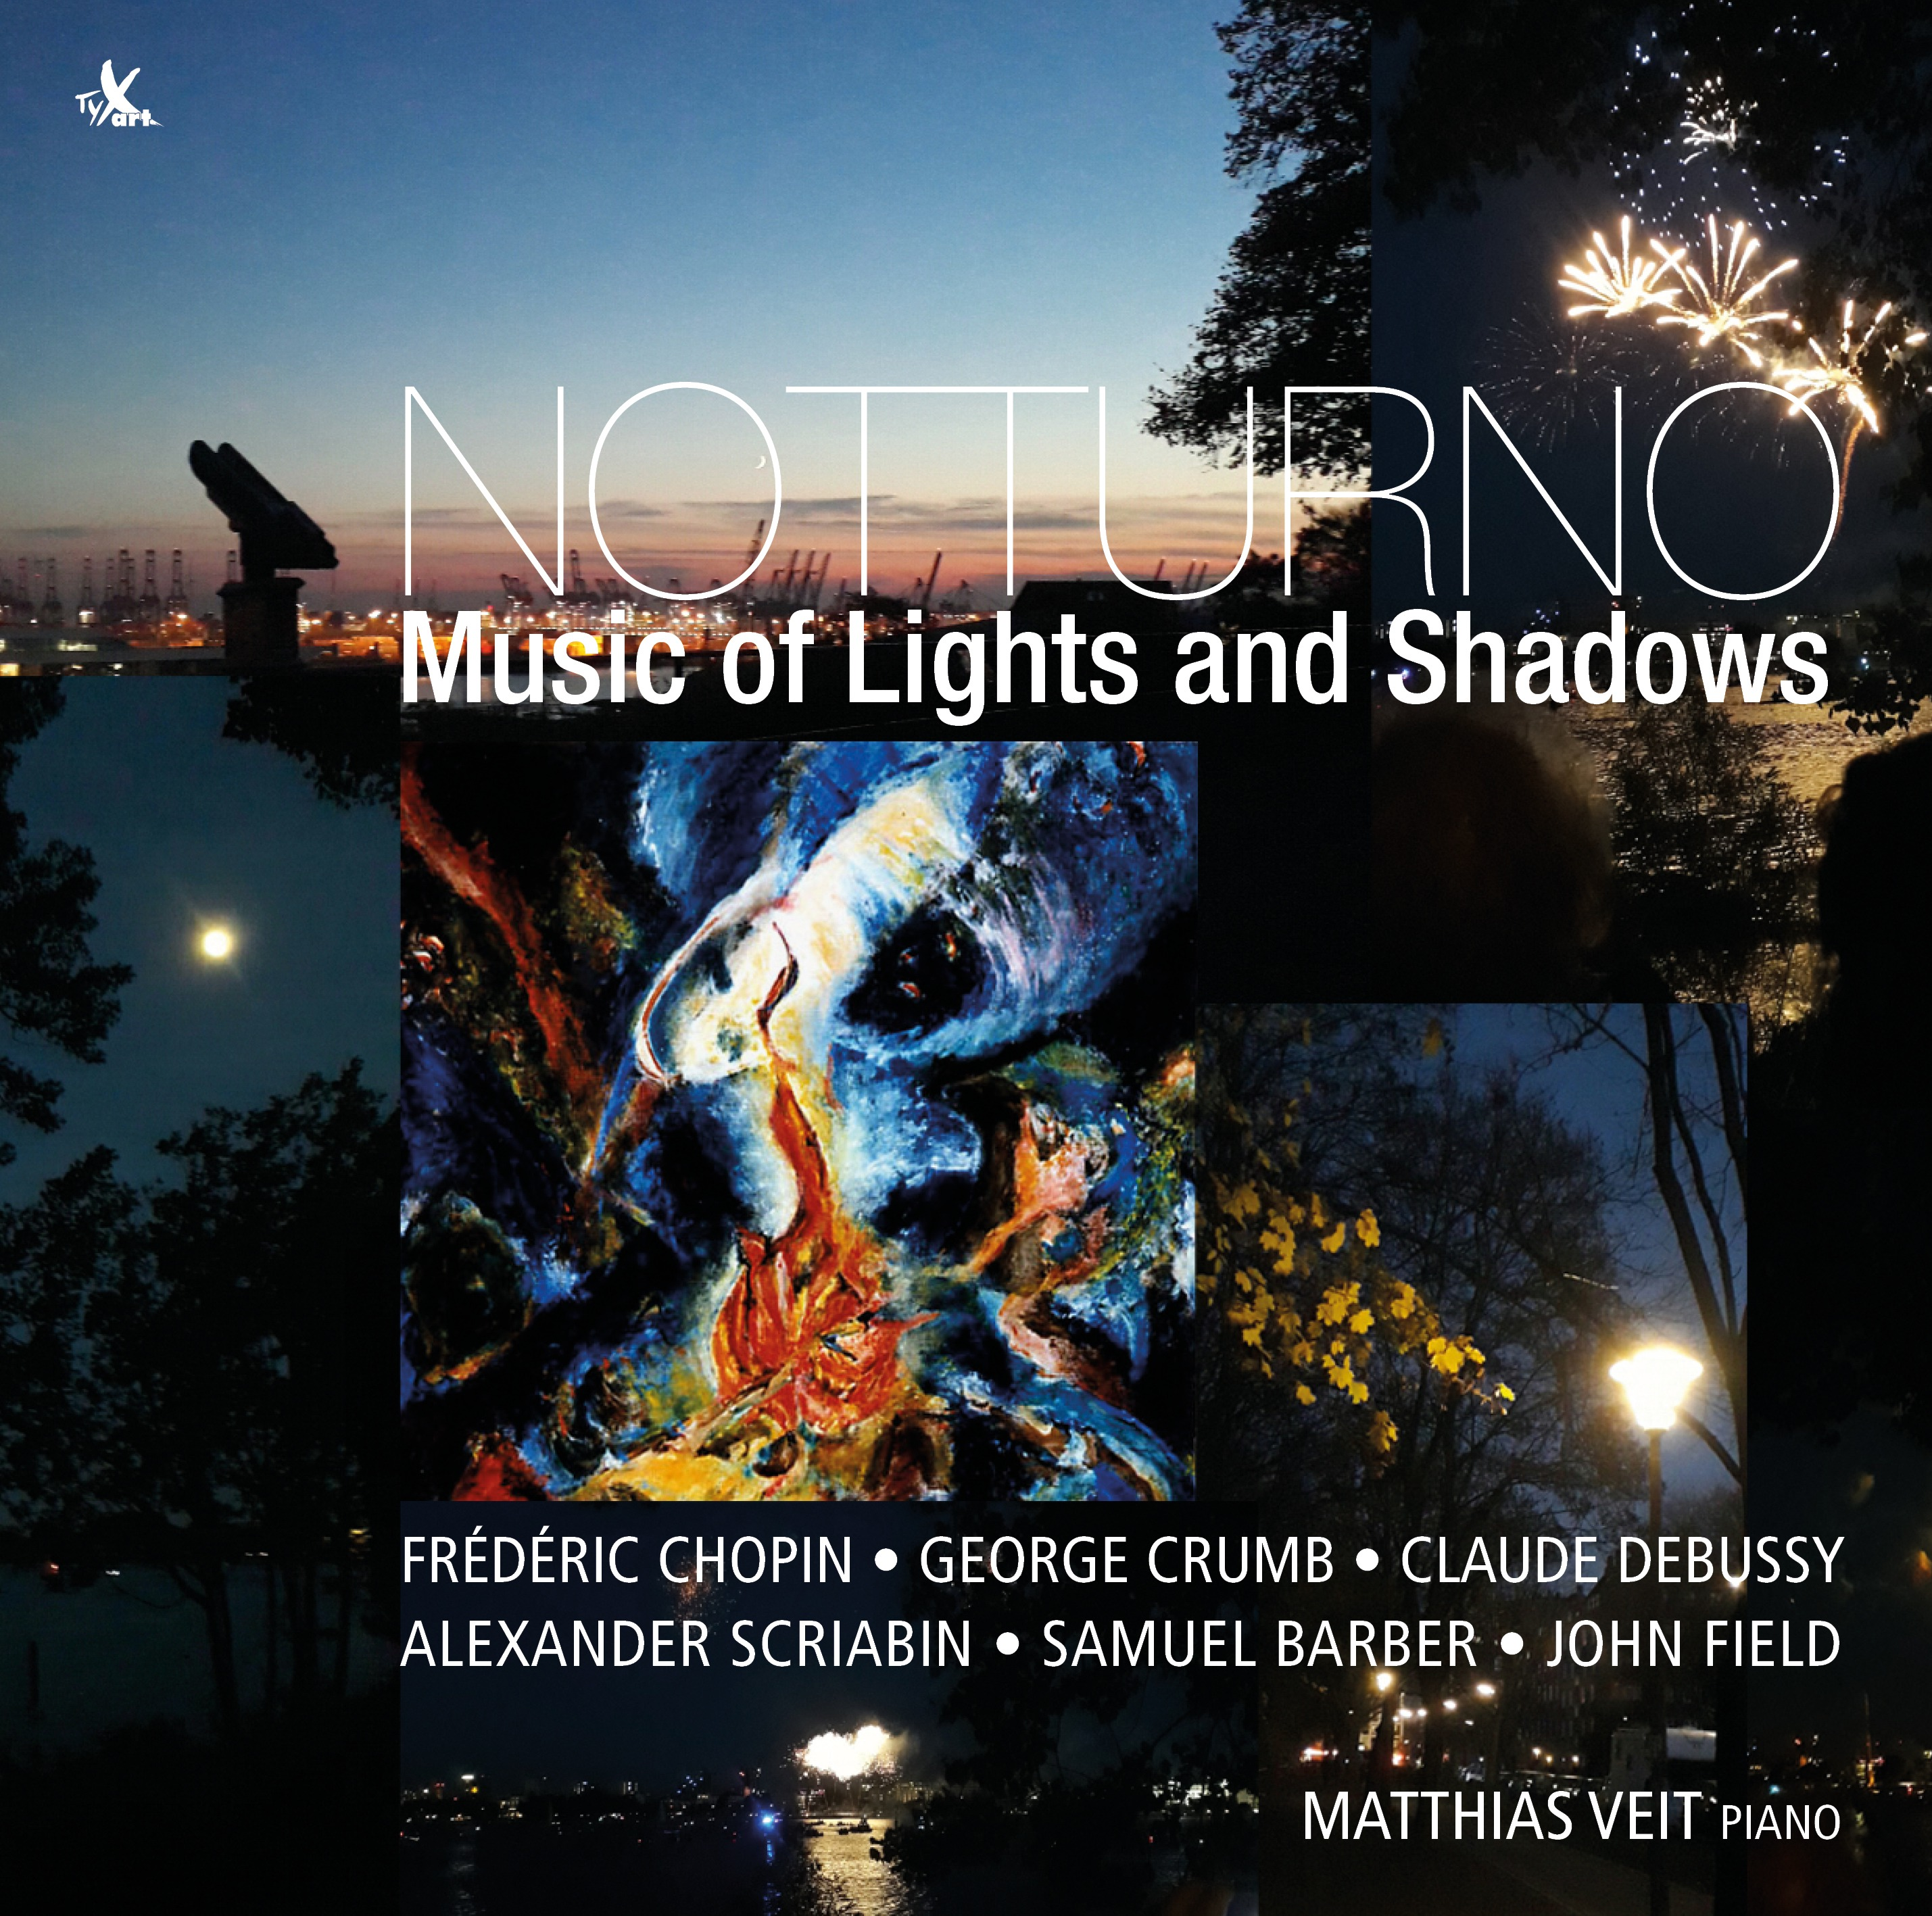 Notturno - Music of Lights and Shadows - Matthias Veit